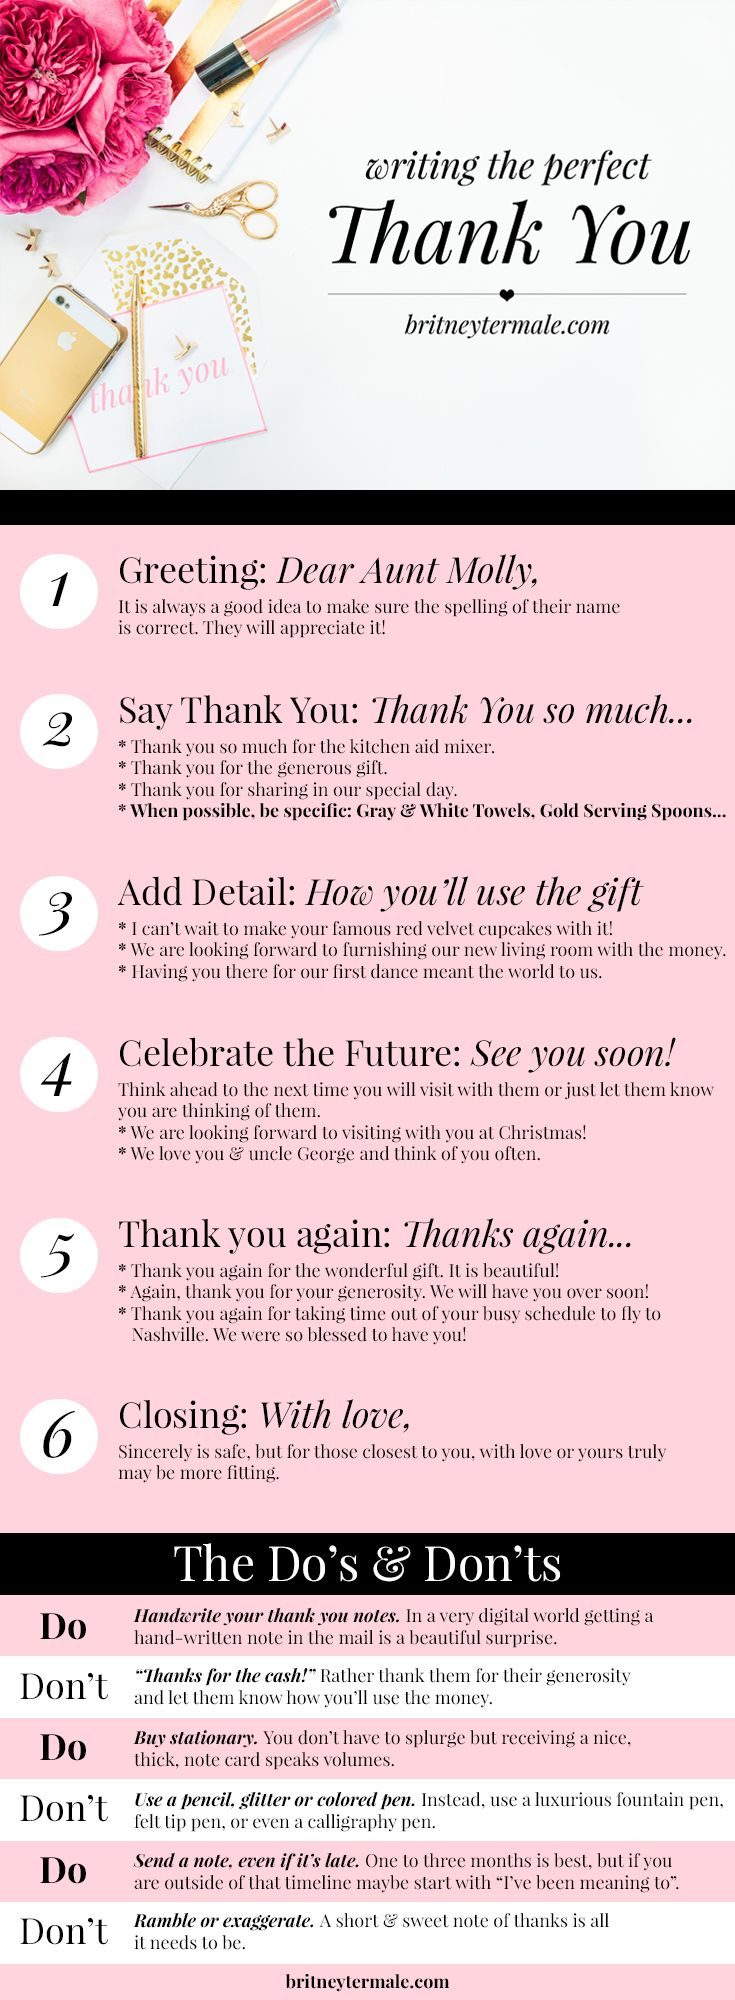 25 unique thank you letter ideas on pinterest thank you note how to write the perfect thank you note l britney termale negle